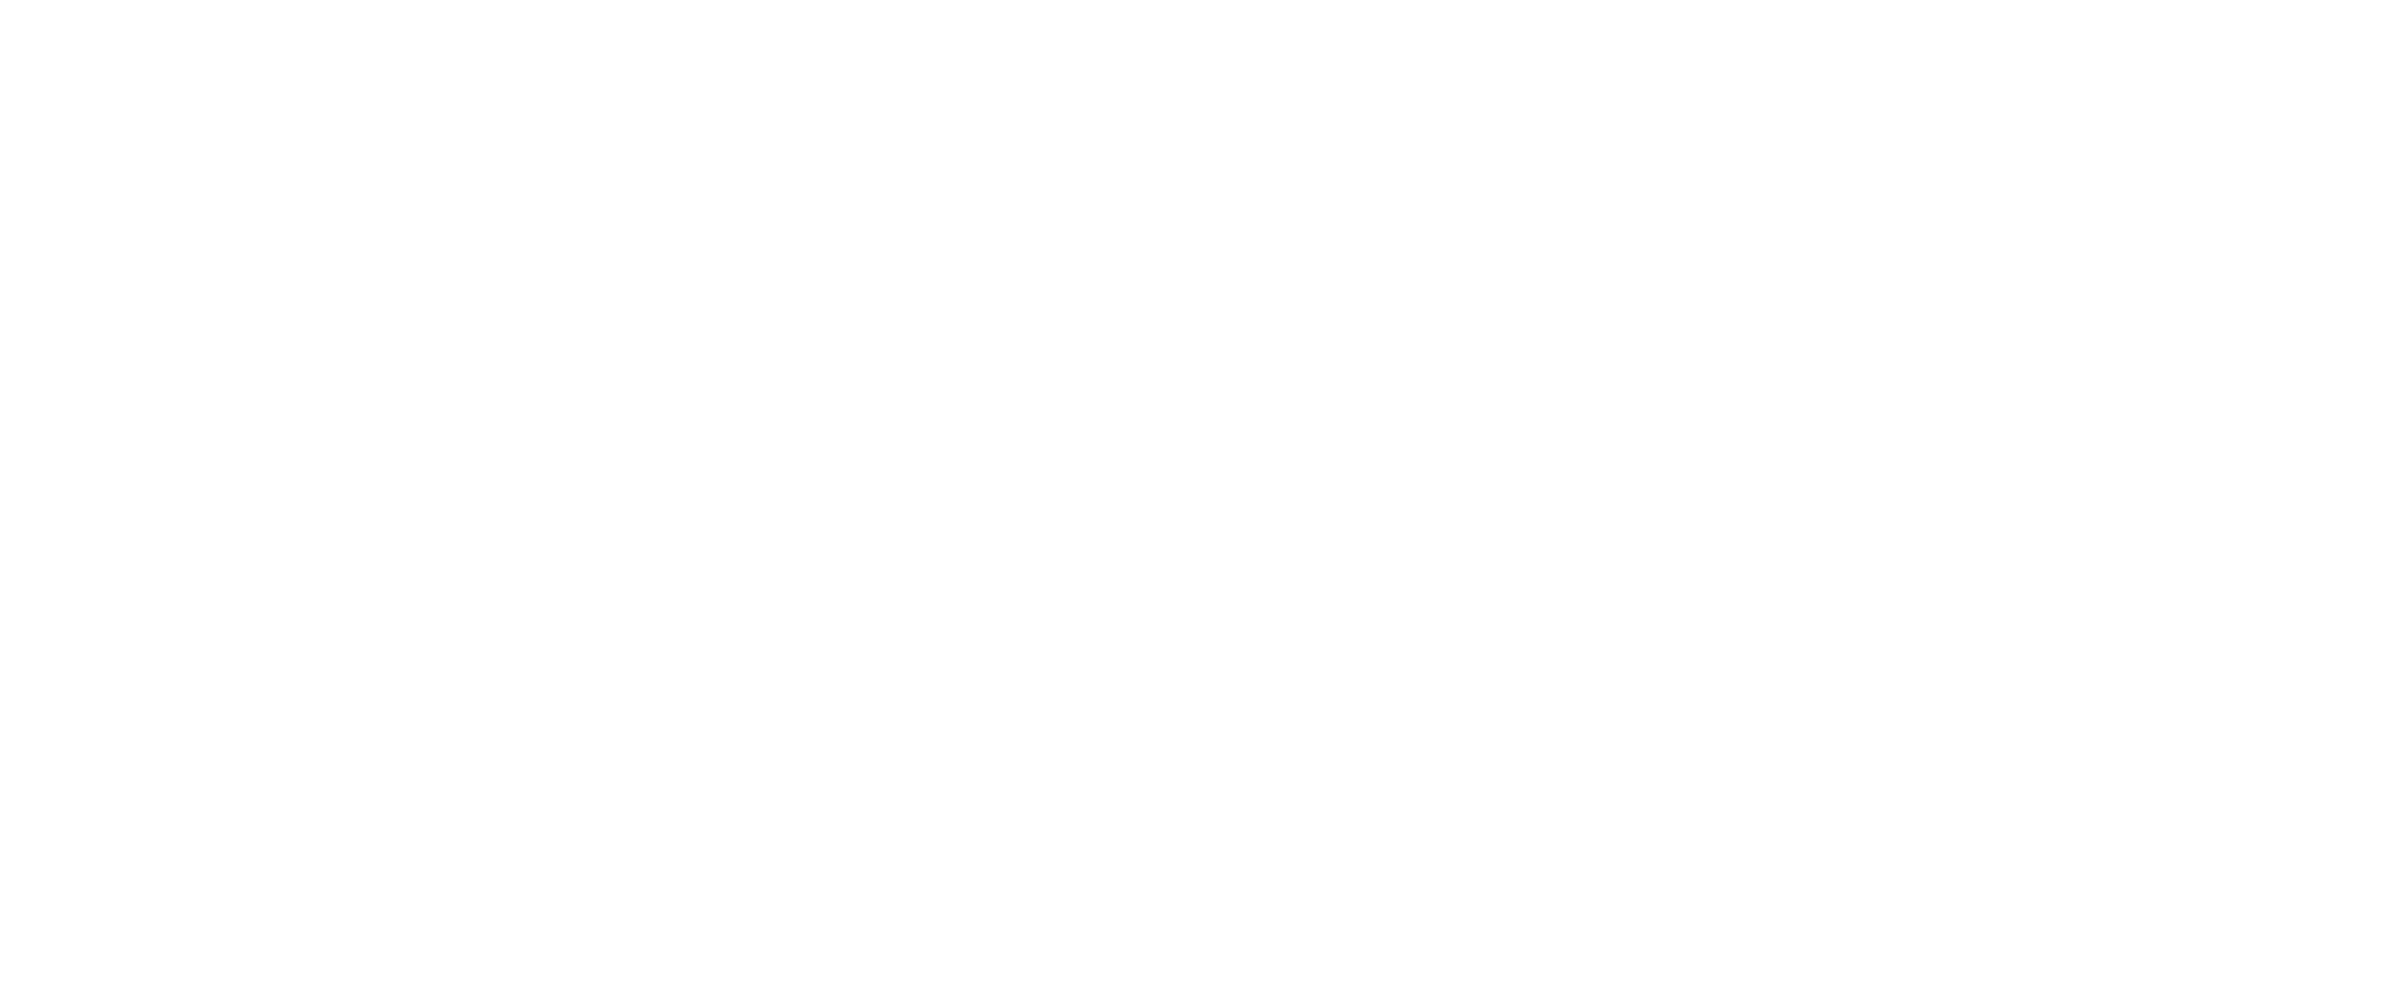 Communities Initiatives Fund Logo